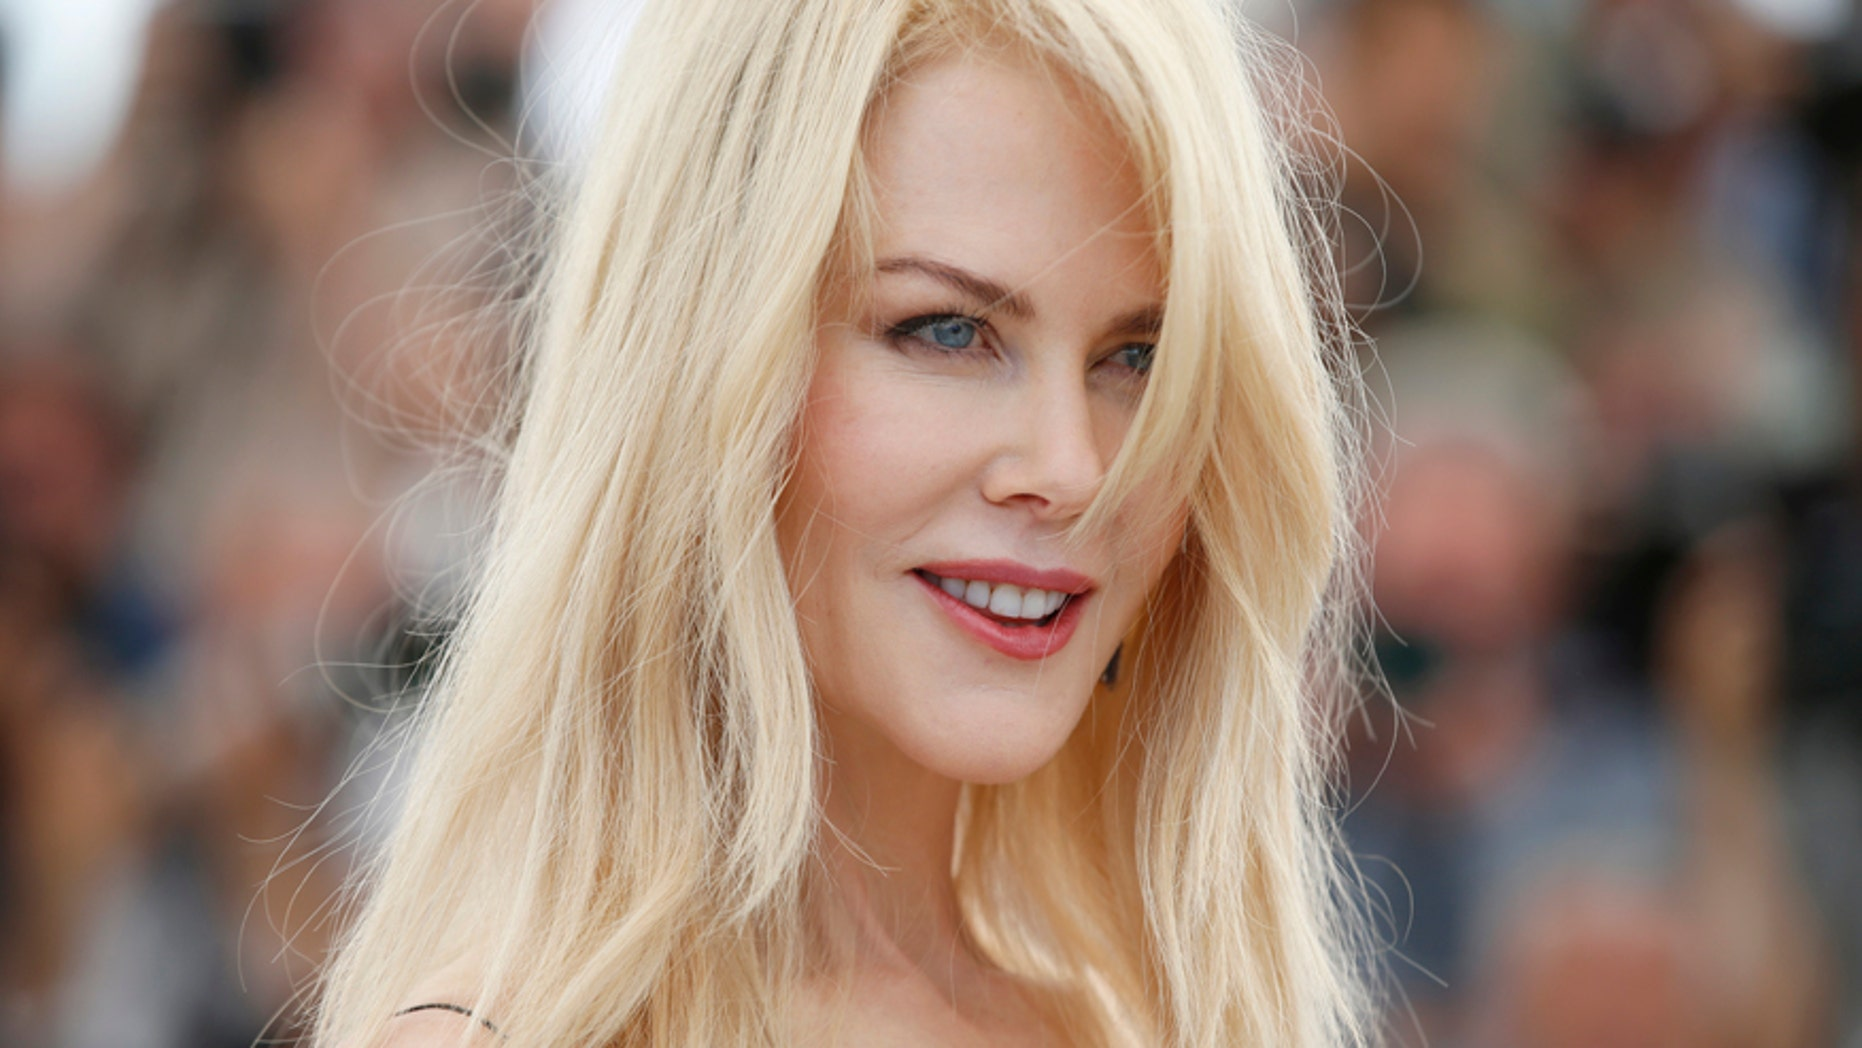 Nicole Kidman LAPD Movie Set Disrupted By Real Shooting